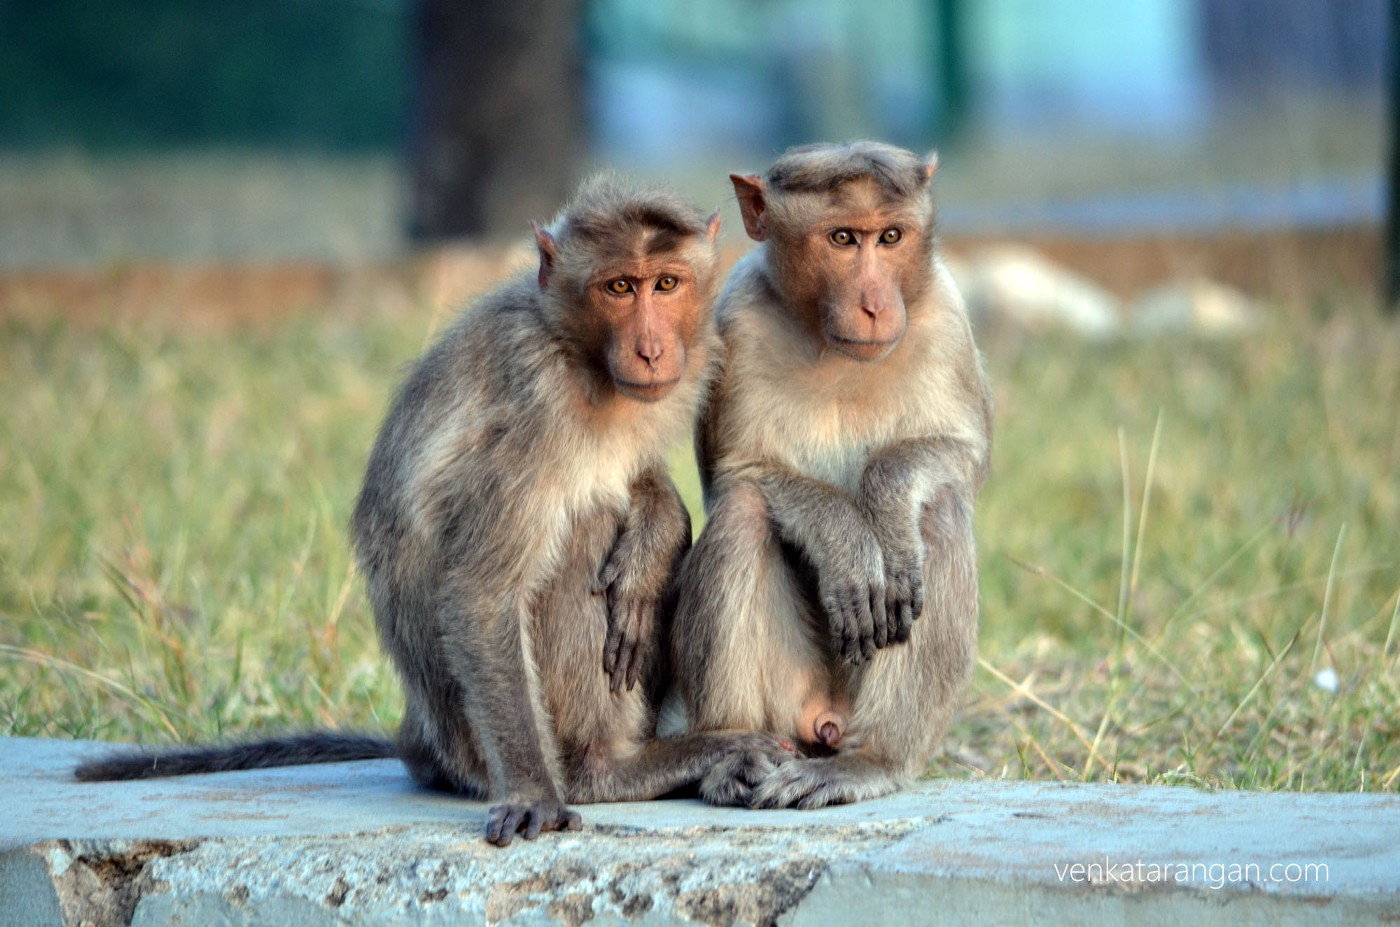 Monkeys, wondering what we humans are queueing for, in front of the tourist centre